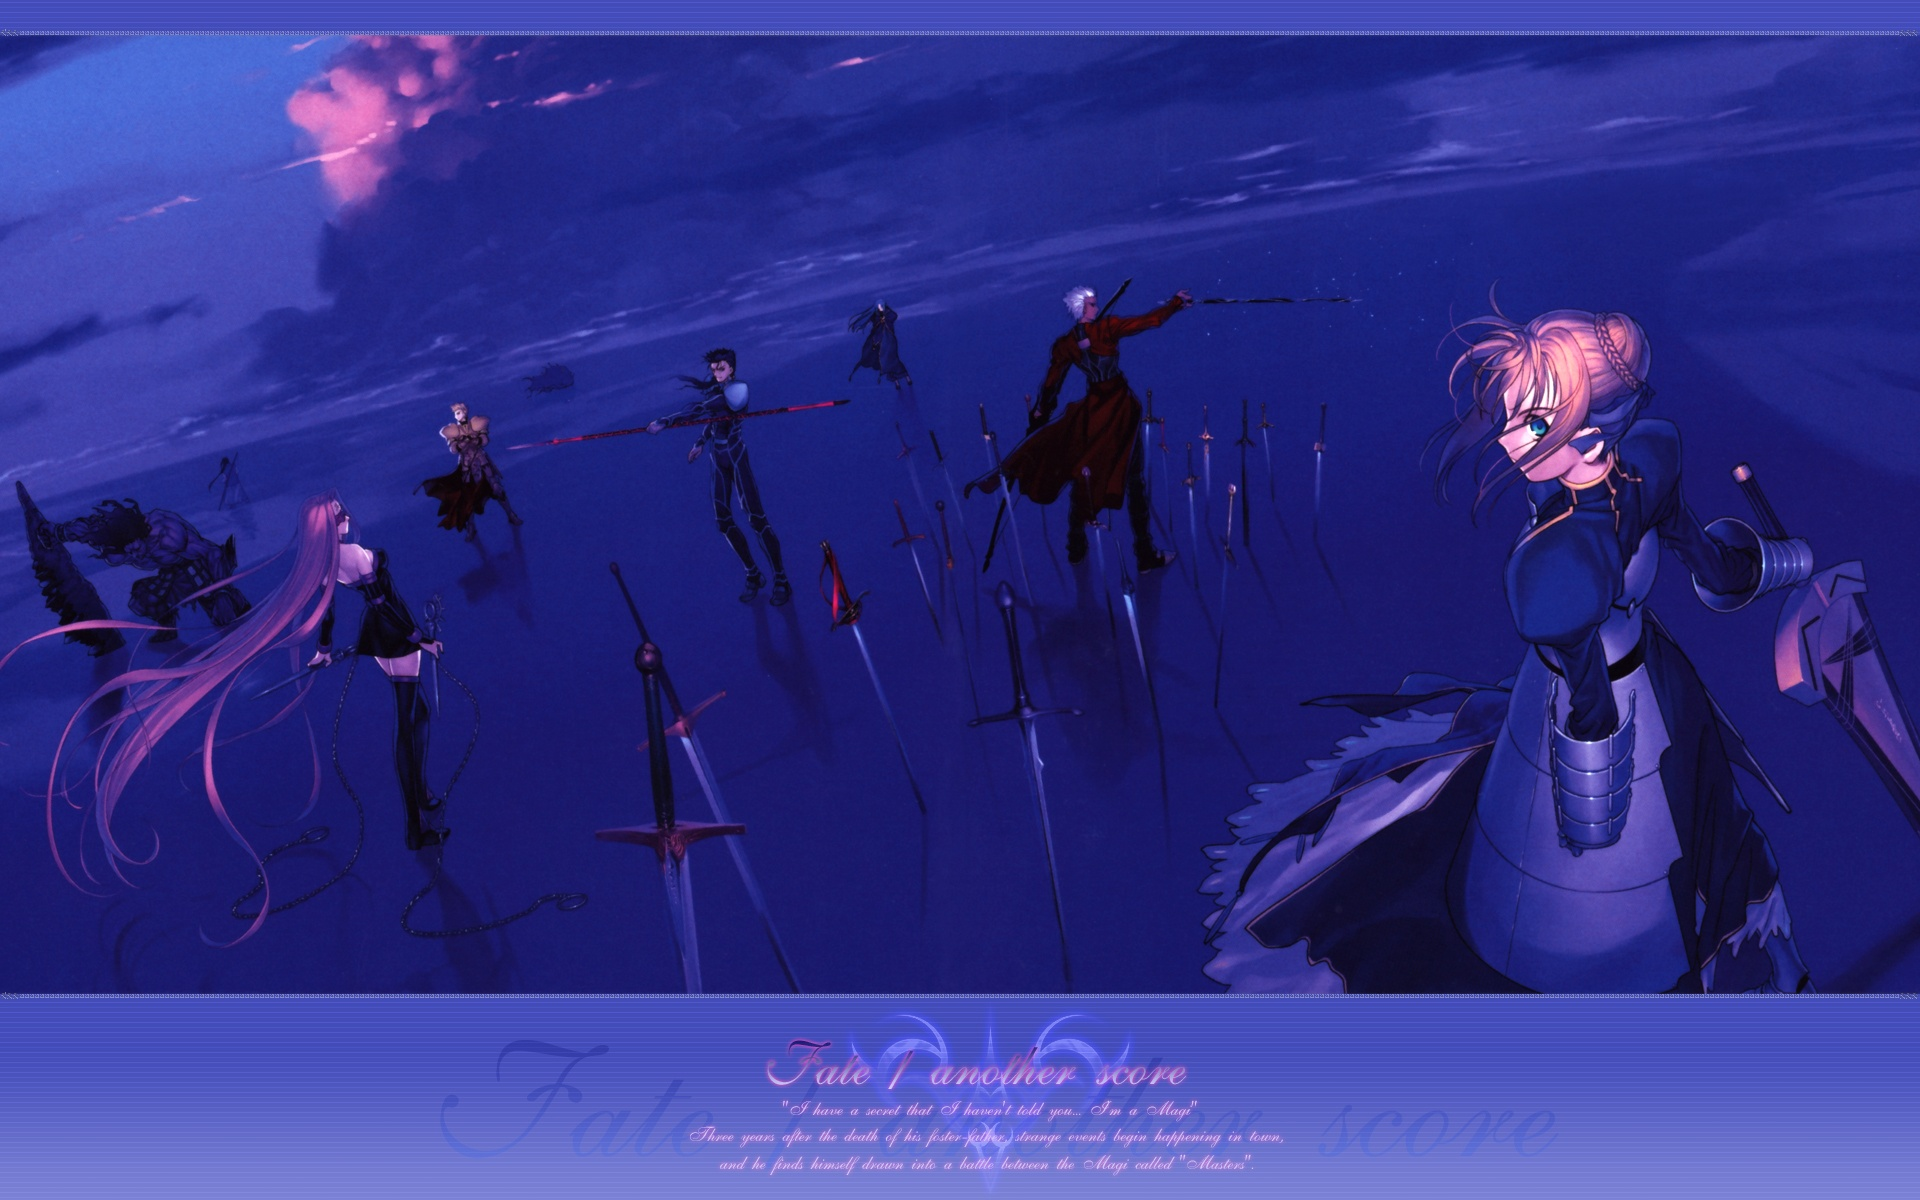 Fate Stay Night Wallpaper 1278198 Zerochan Anime Image Board